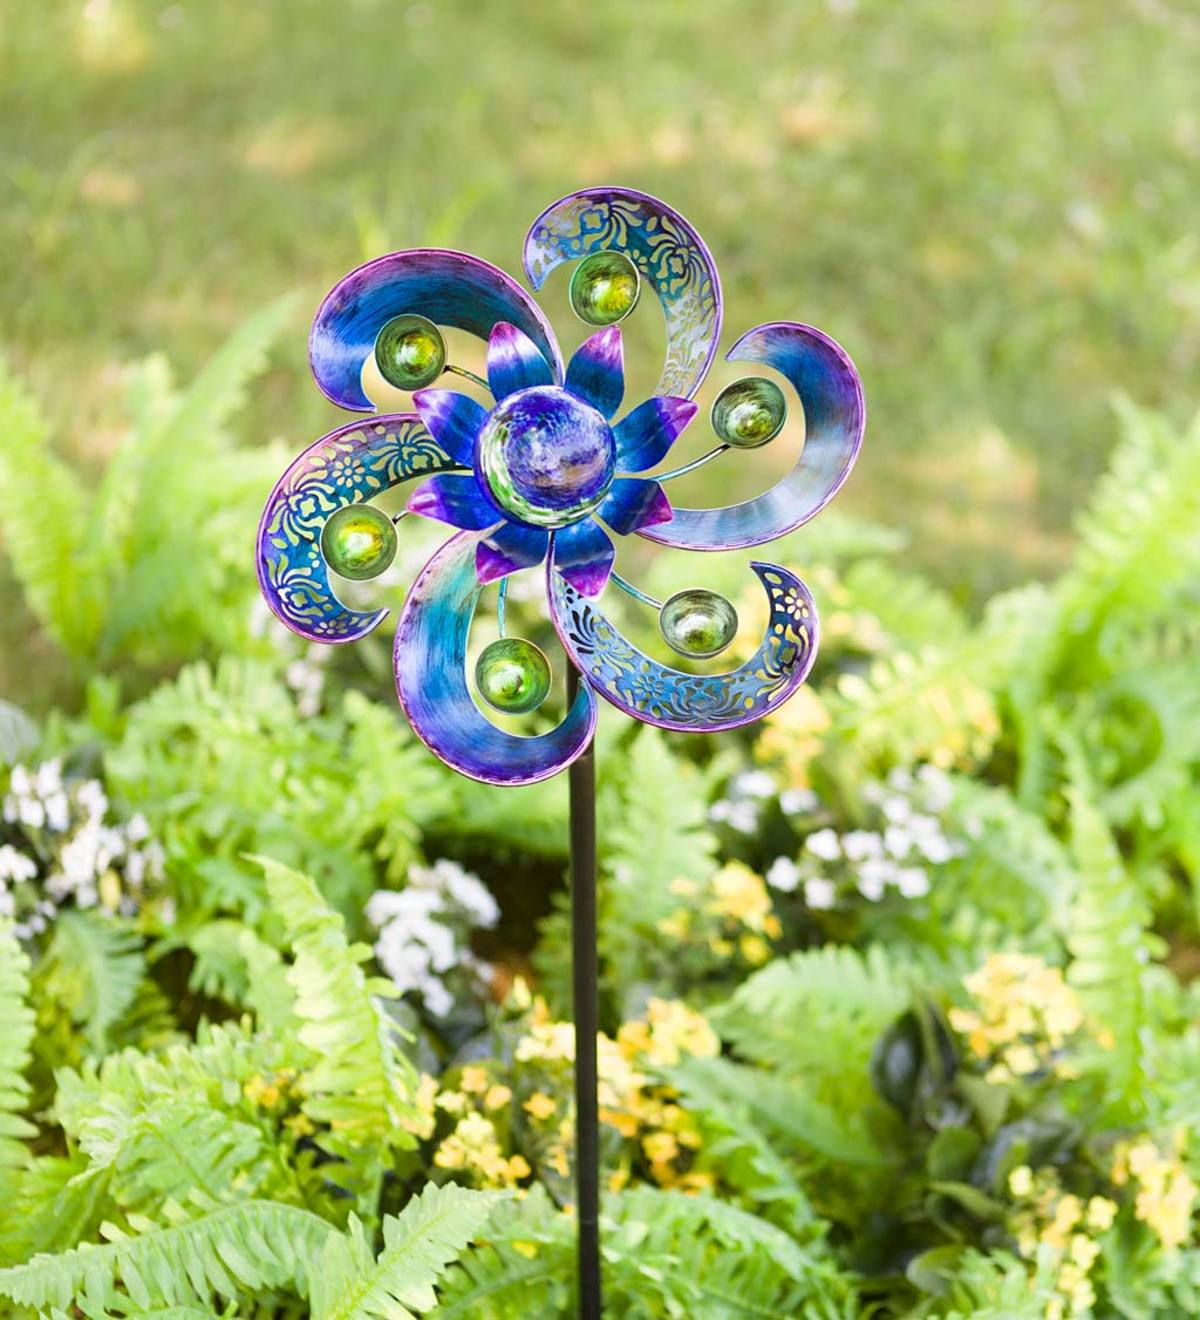 Metal Pinwheel Spinner with Glow-in-the-Dark Glass Ball